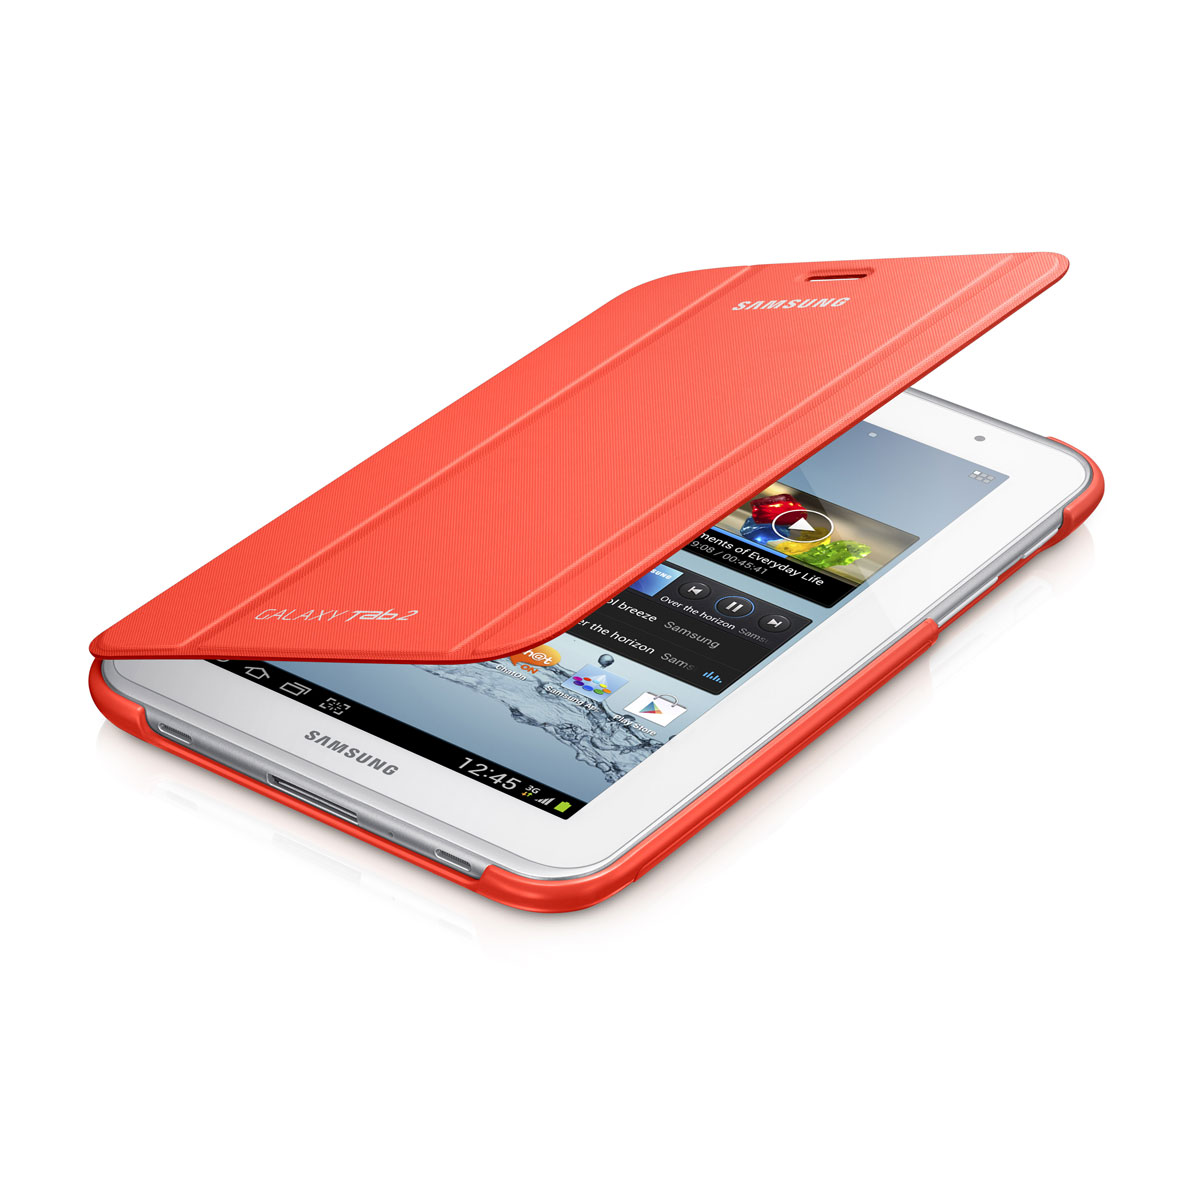 Etui Tablette Samsung Book Cover Orange Pour Samsung Galaxy Tab 2 7